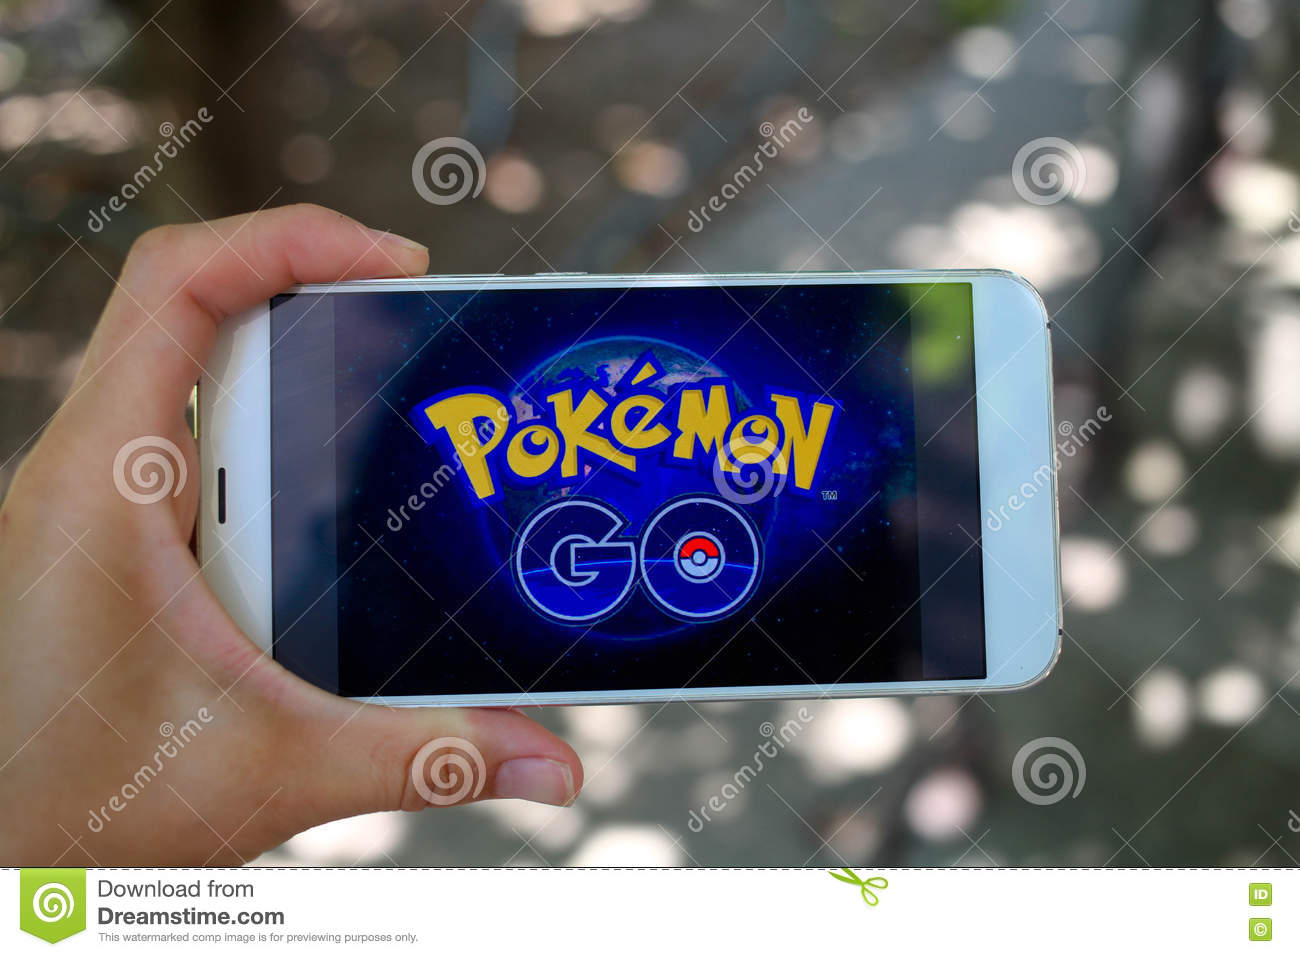 Krasnodar Russia On July 26 2016 Pokemon Go Is A Location Editorial Stock Photo Image Of Person Logo 75003483